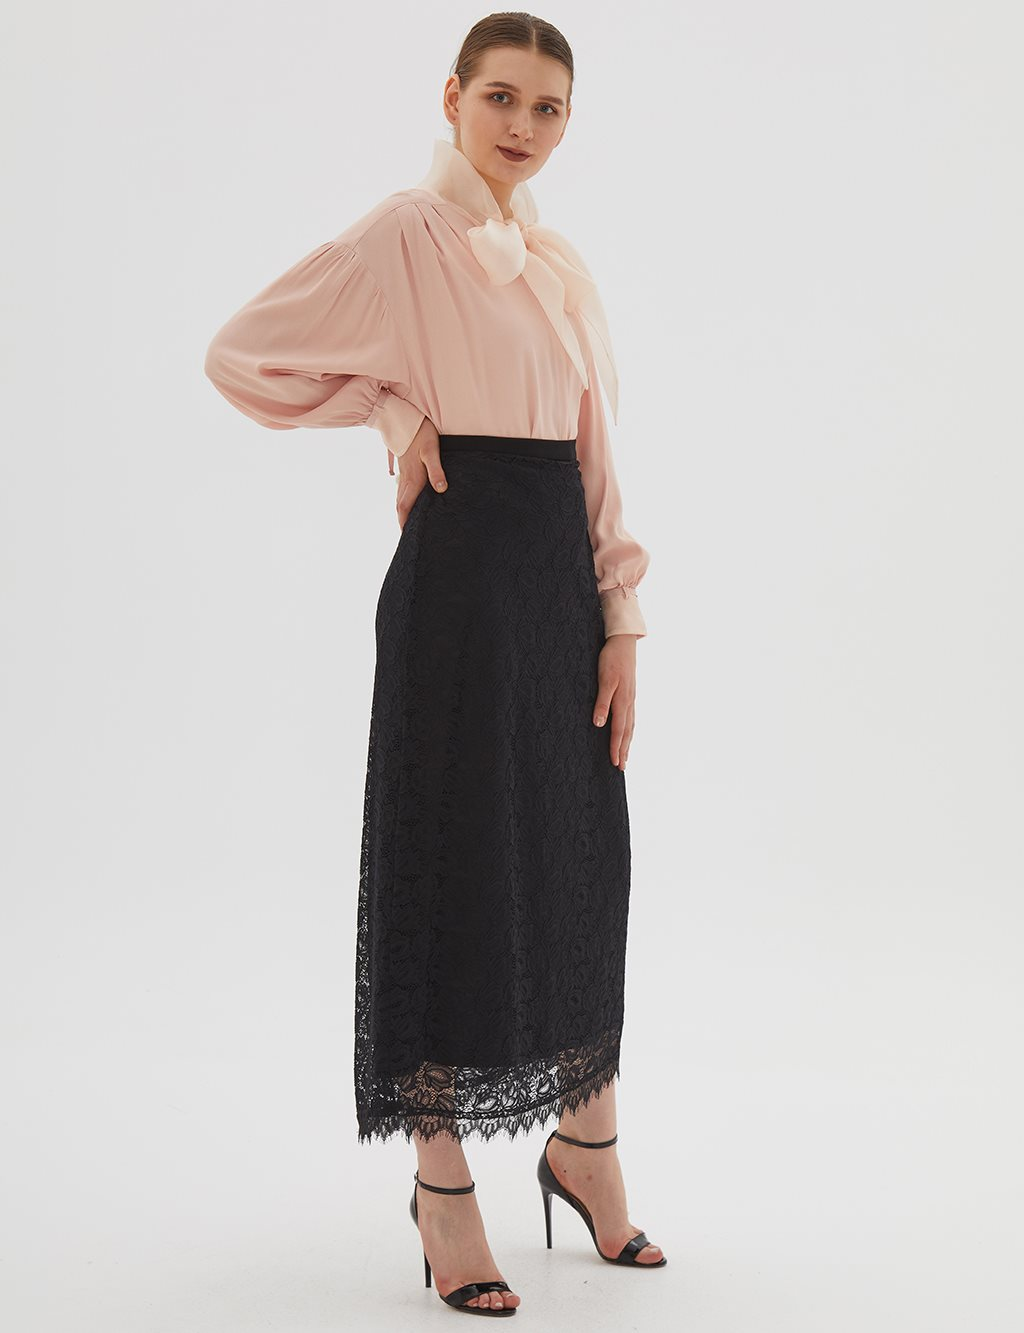 Lace Skirt Black B20 12037